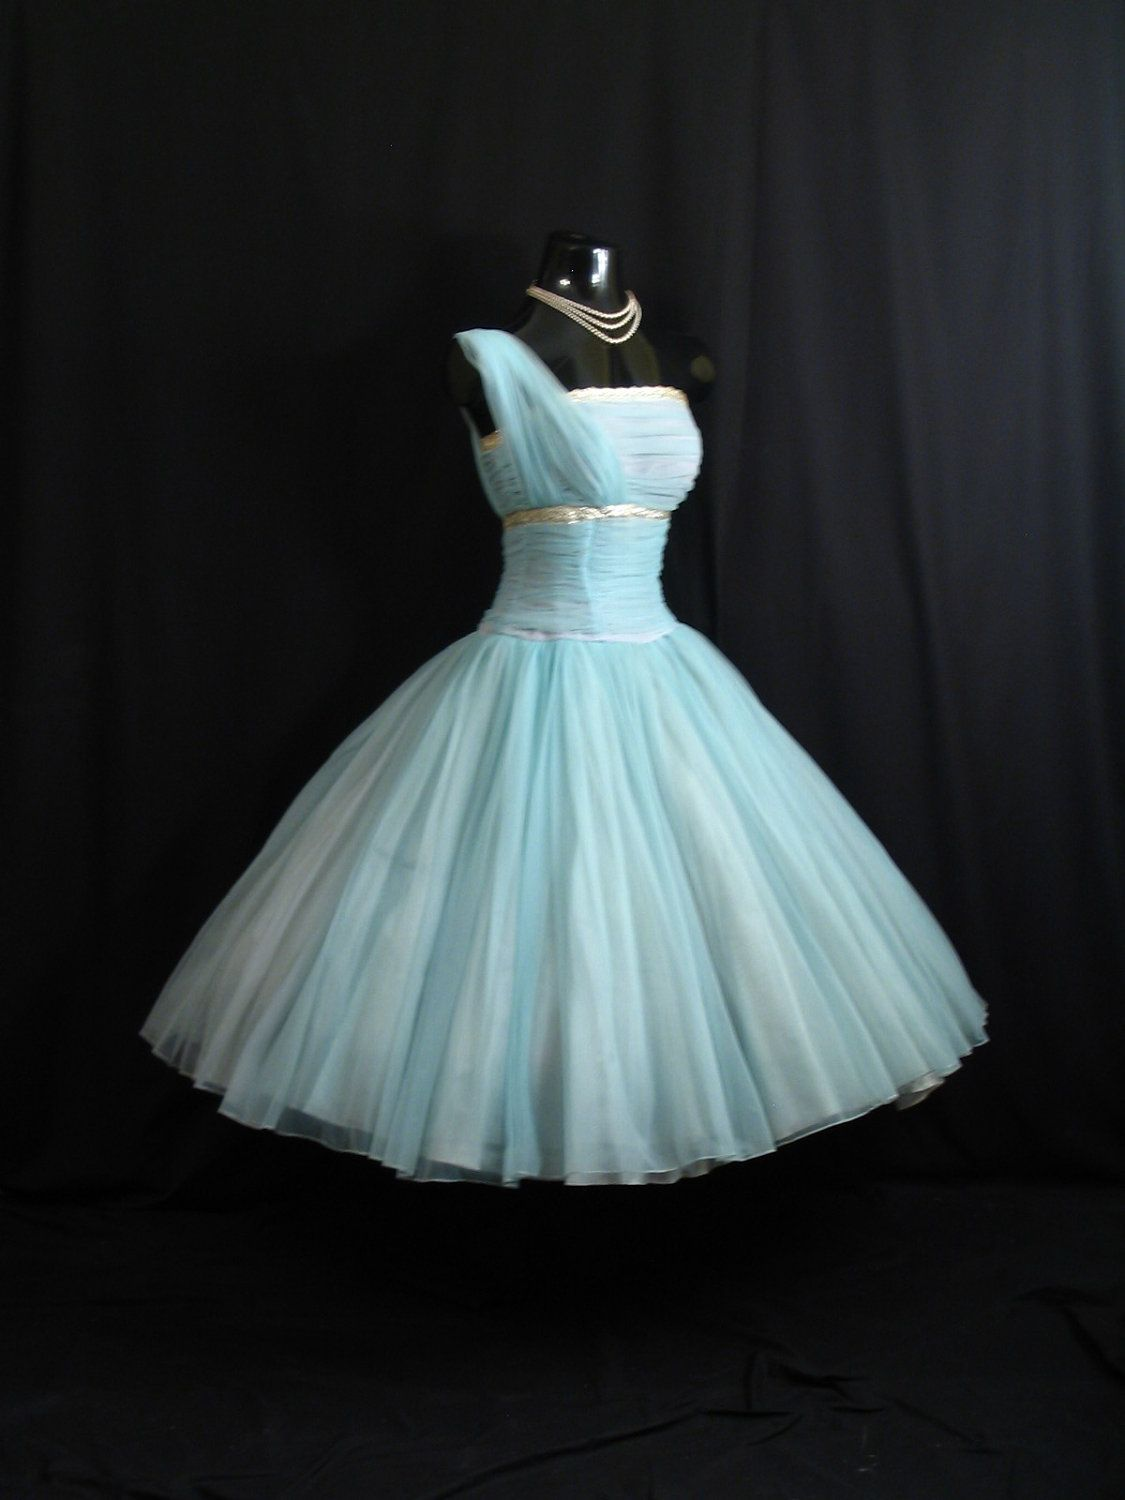 Vintage s fred perlberg turquoise party dress vintage bitch